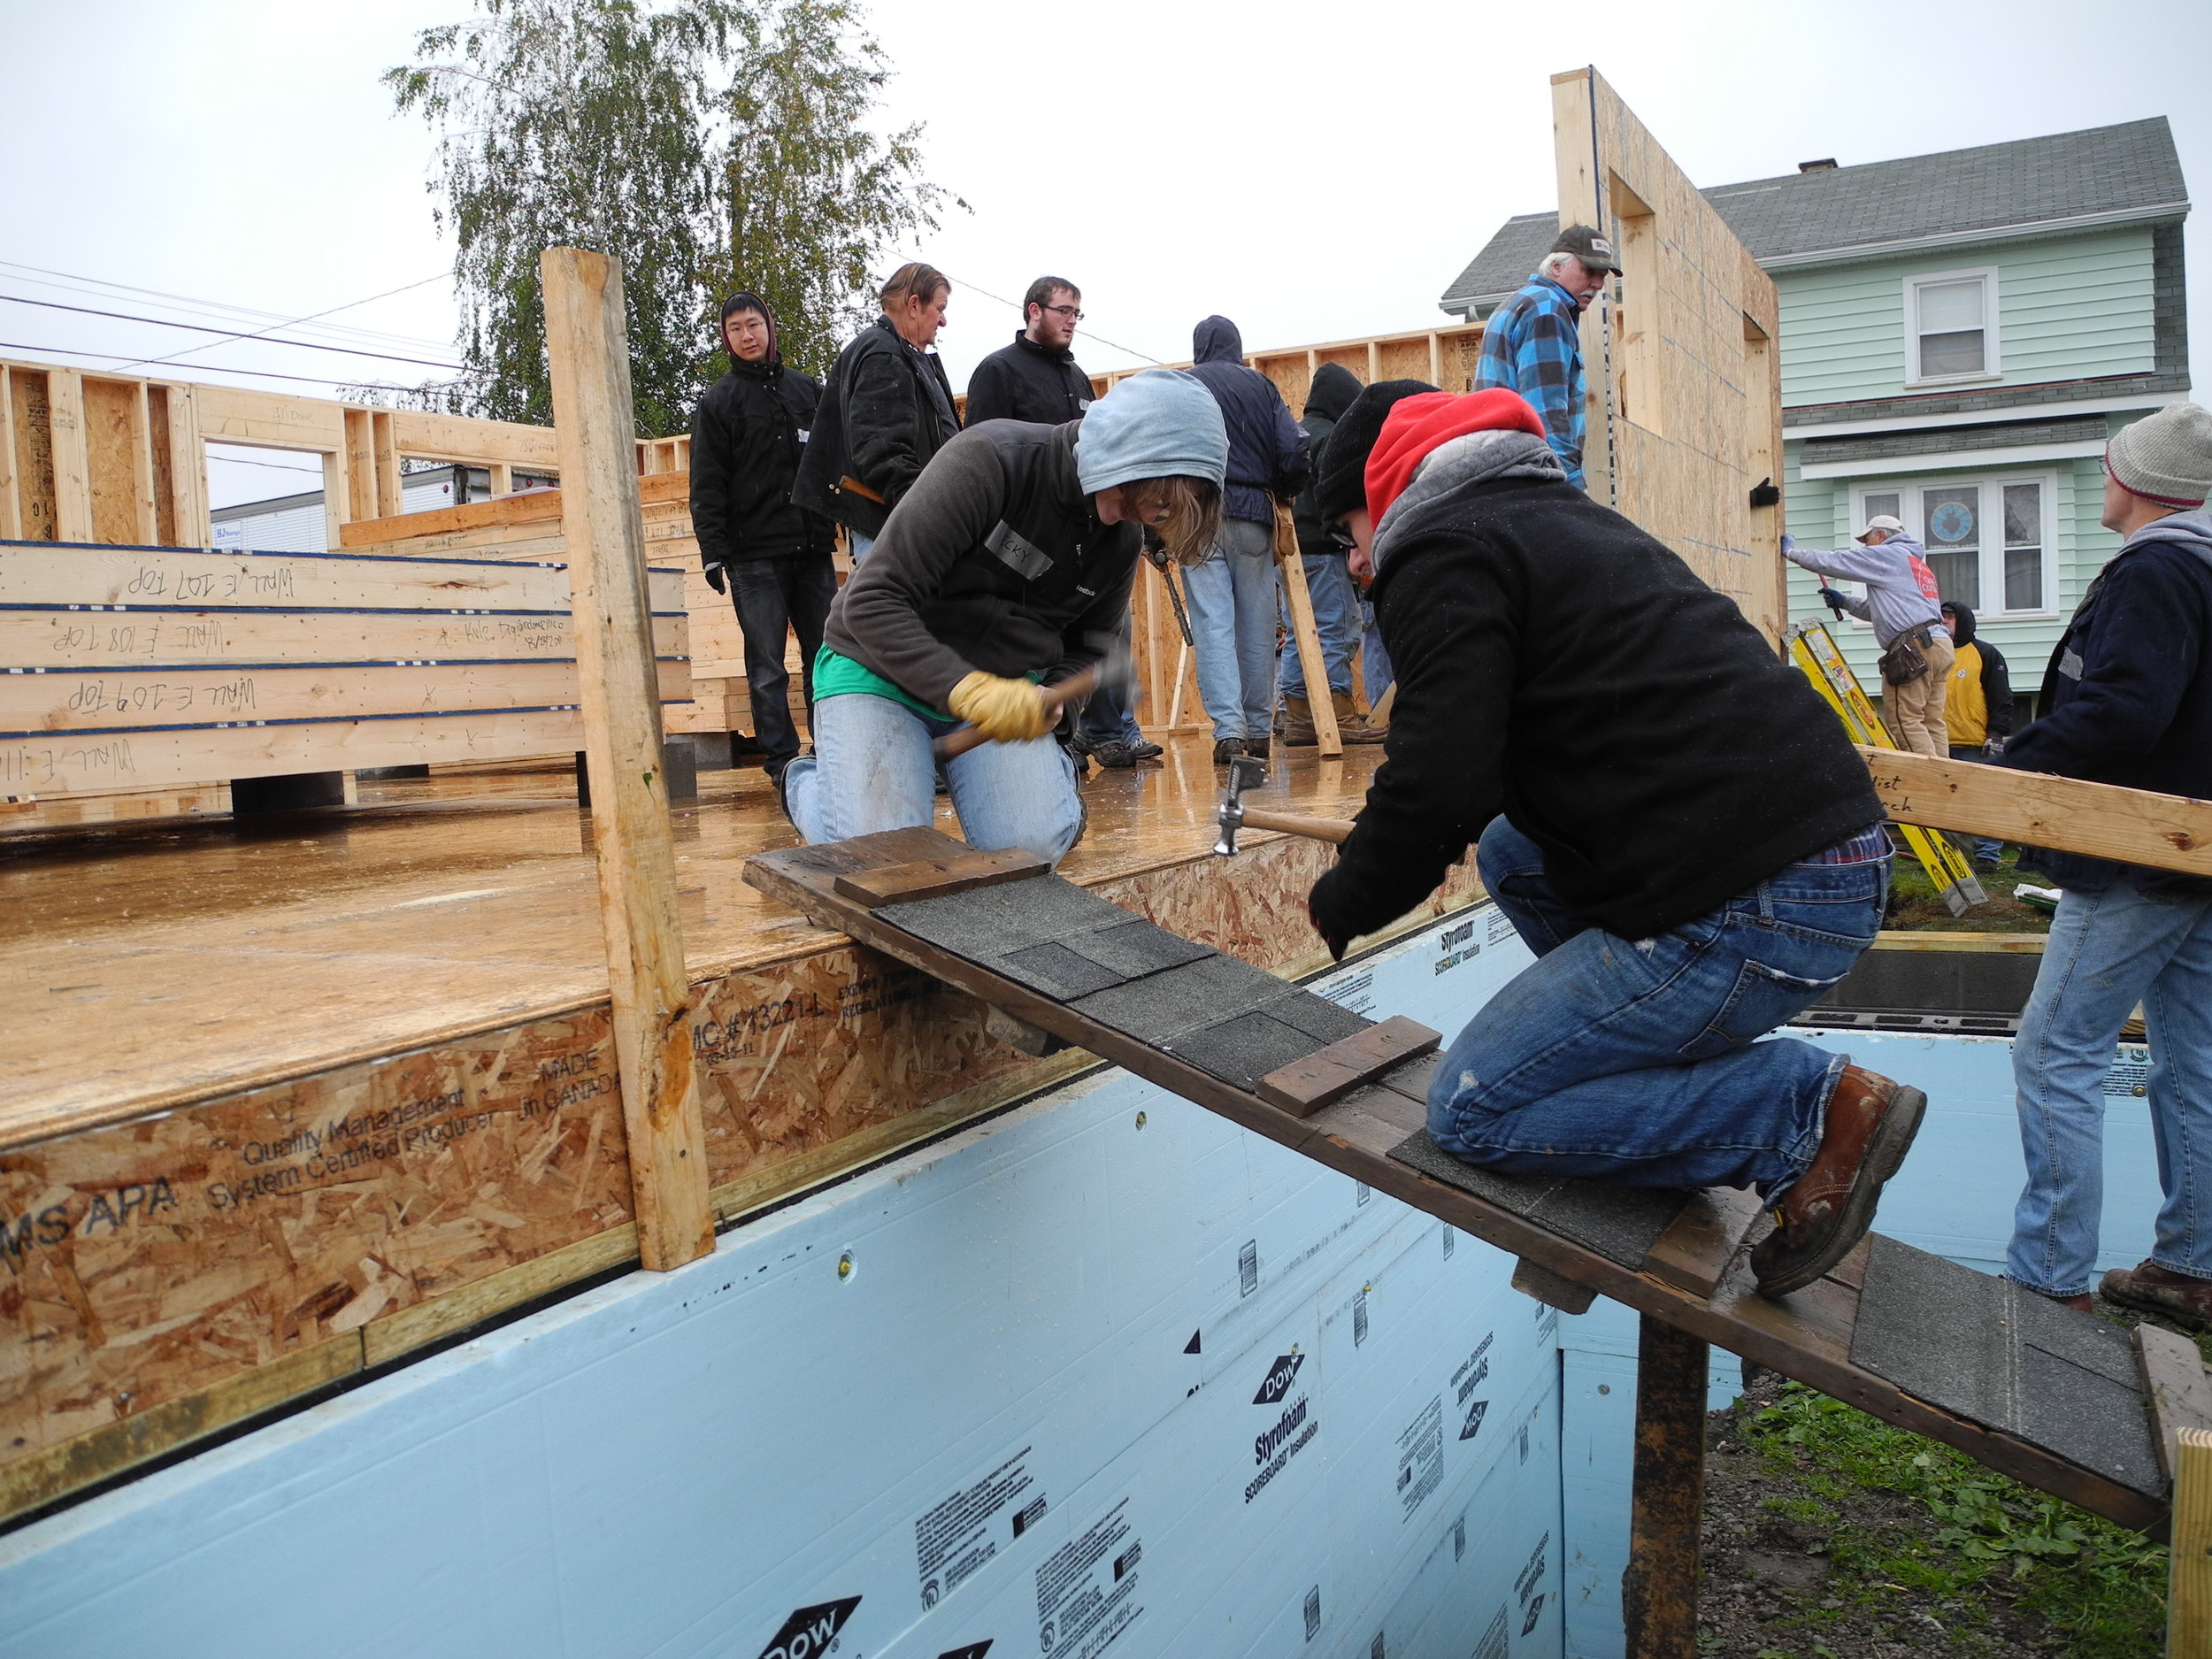 Students participated in a Habitat for Humanity Blitz Build event to gain first hand experience with prefabrication strategies.